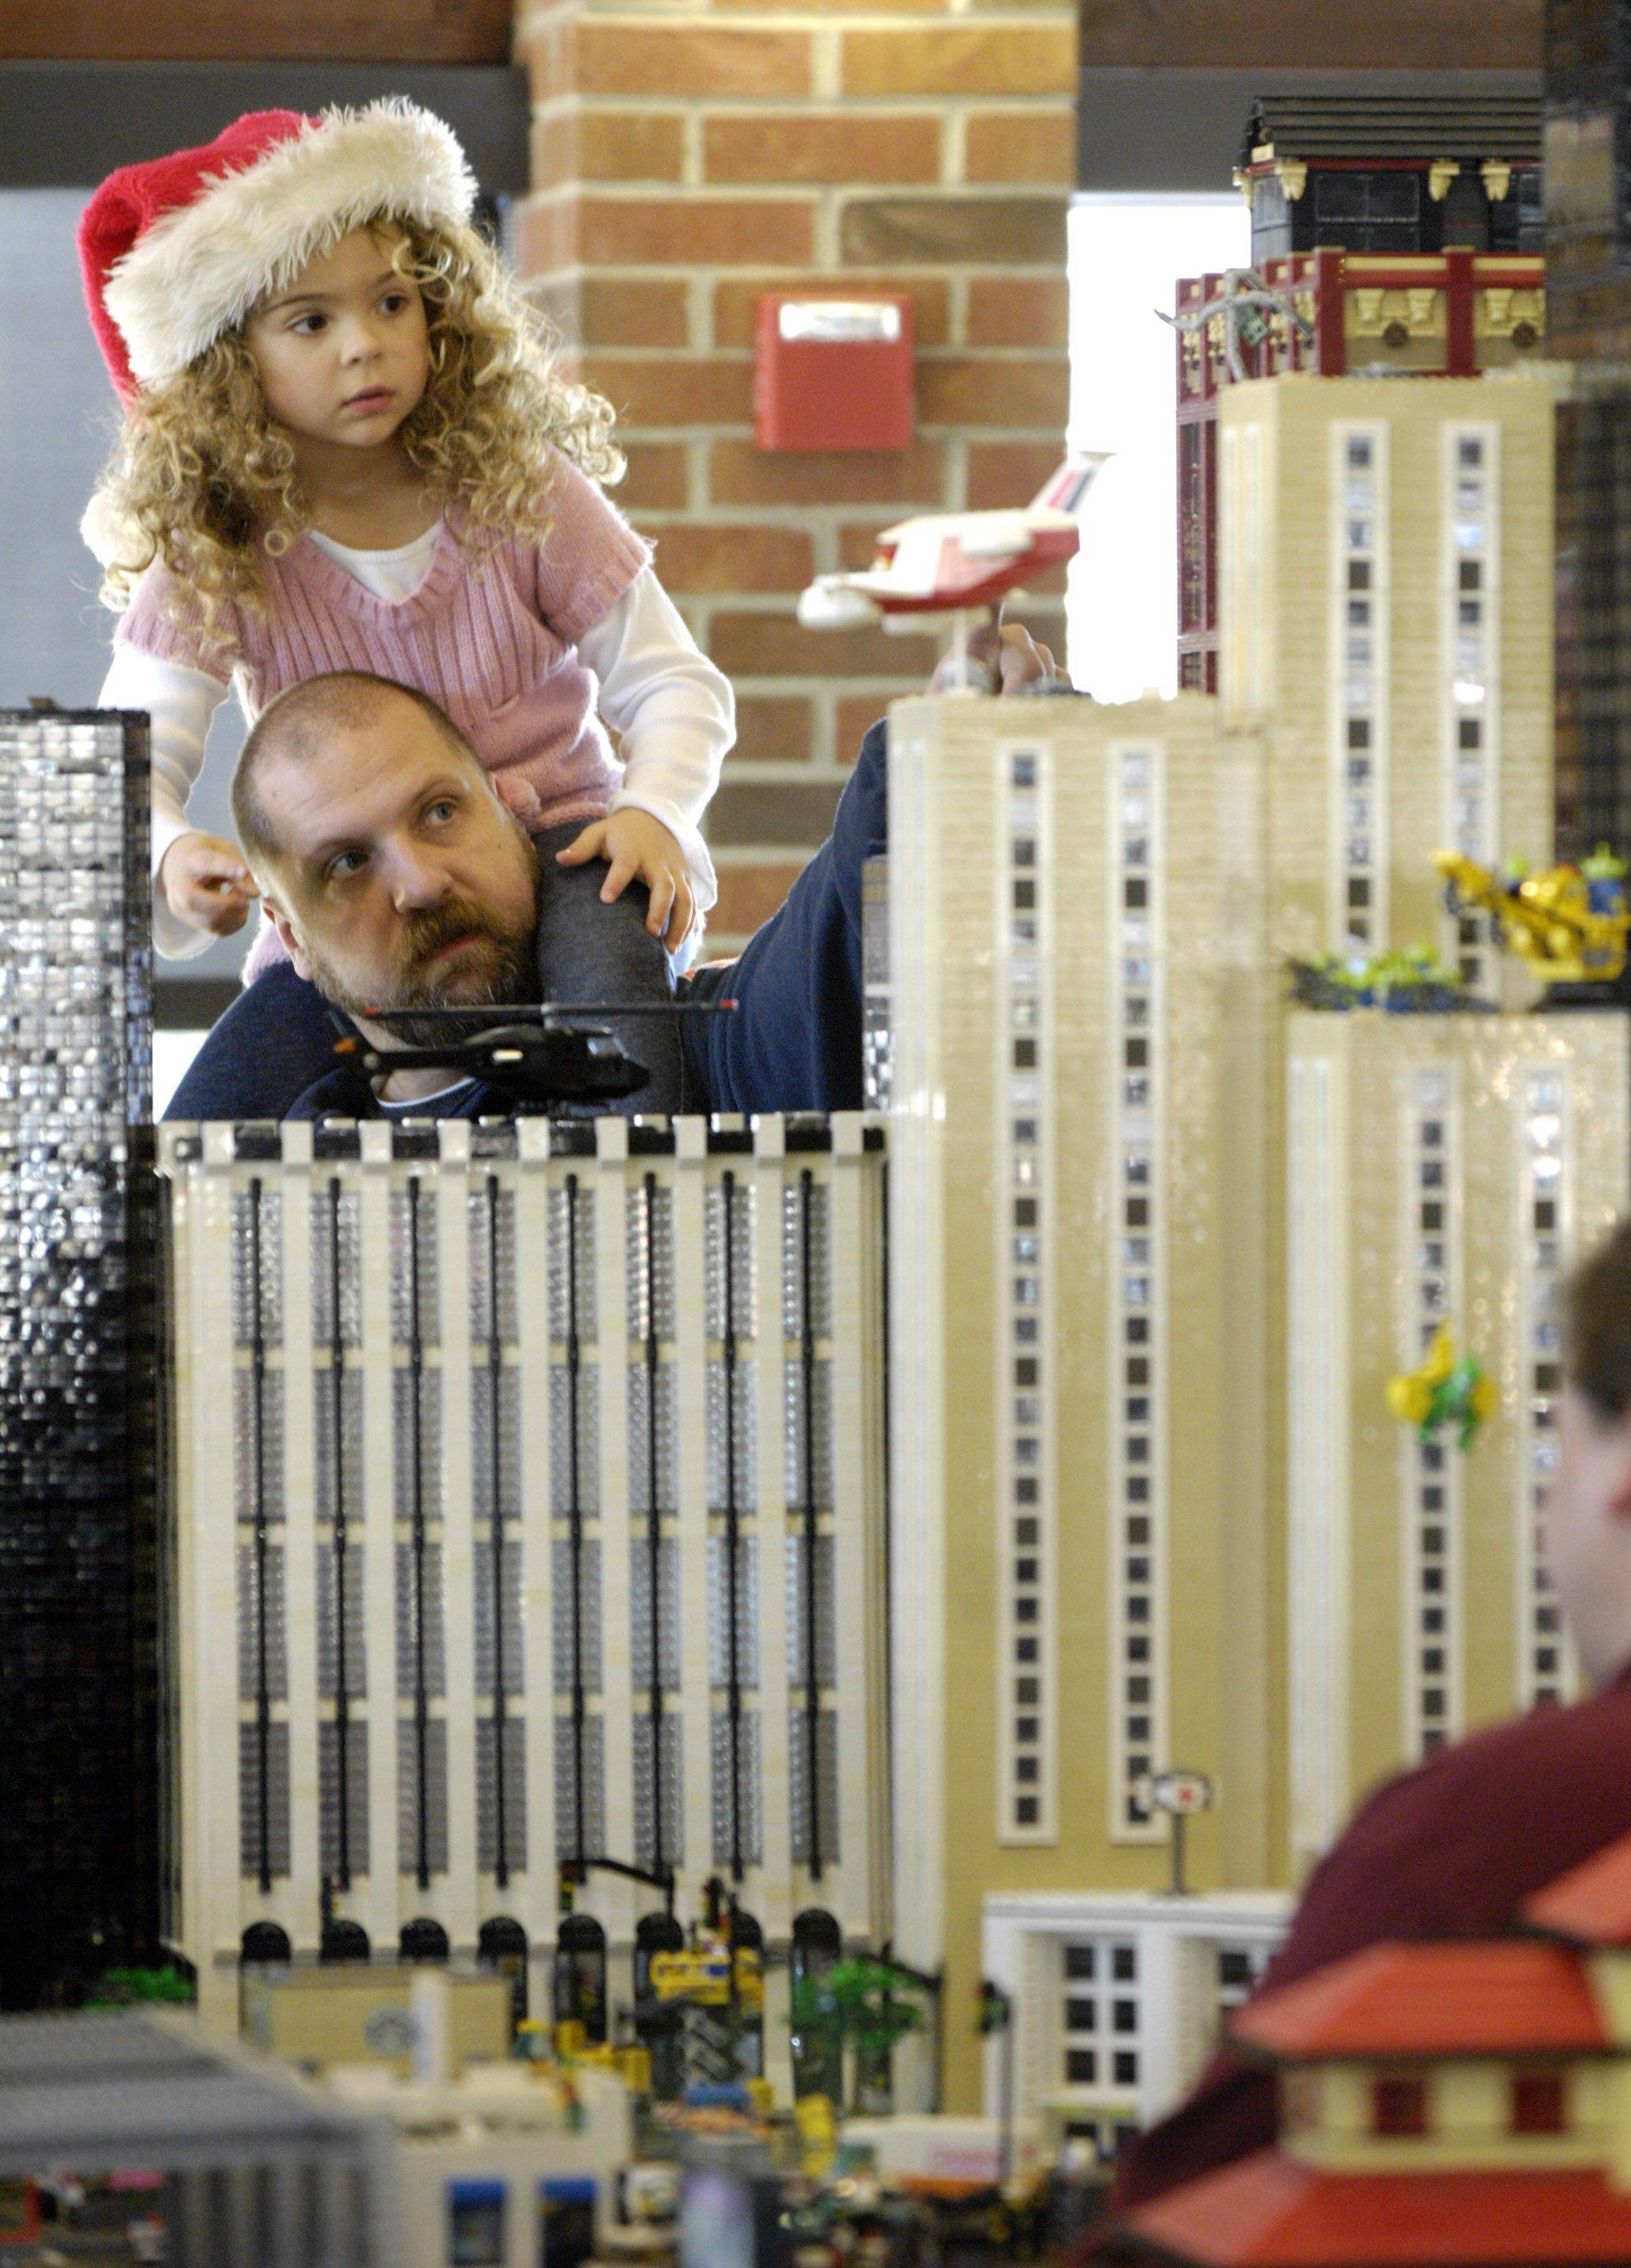 Joe Fedinec and his daughter, Hannah, 5, of Woodridge peer up at the skyscrapers made of Legos during the Lego Train Show Sunday at Cantigny Park in Wheaton.